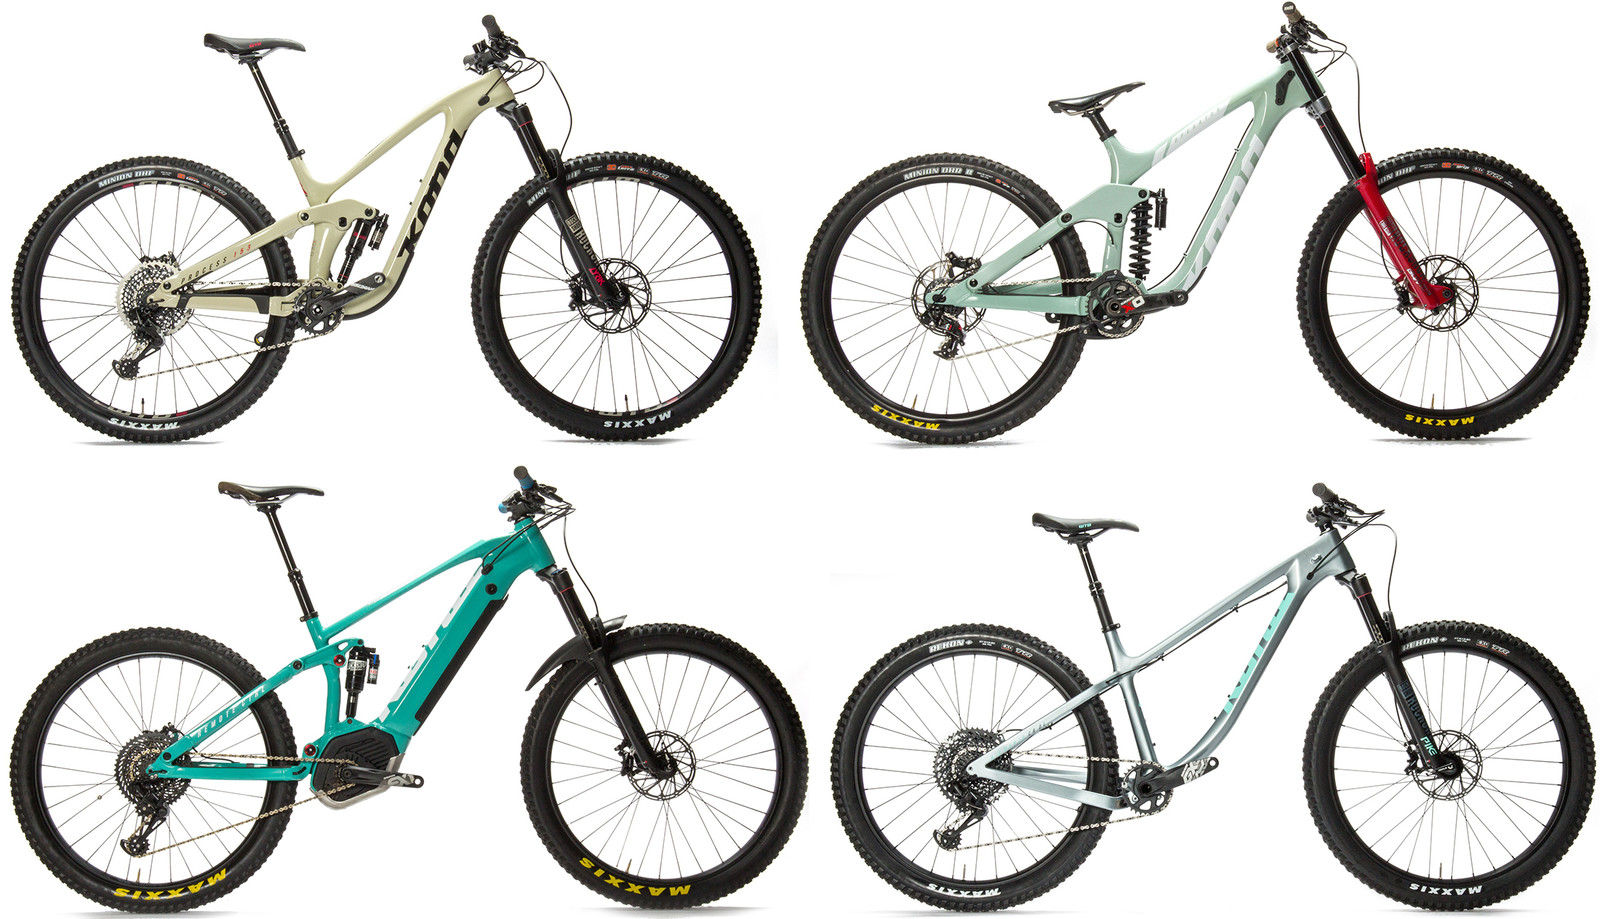 Kona Introduces Five Fun New Bikes - Sea Otter Classic - Mountain ...